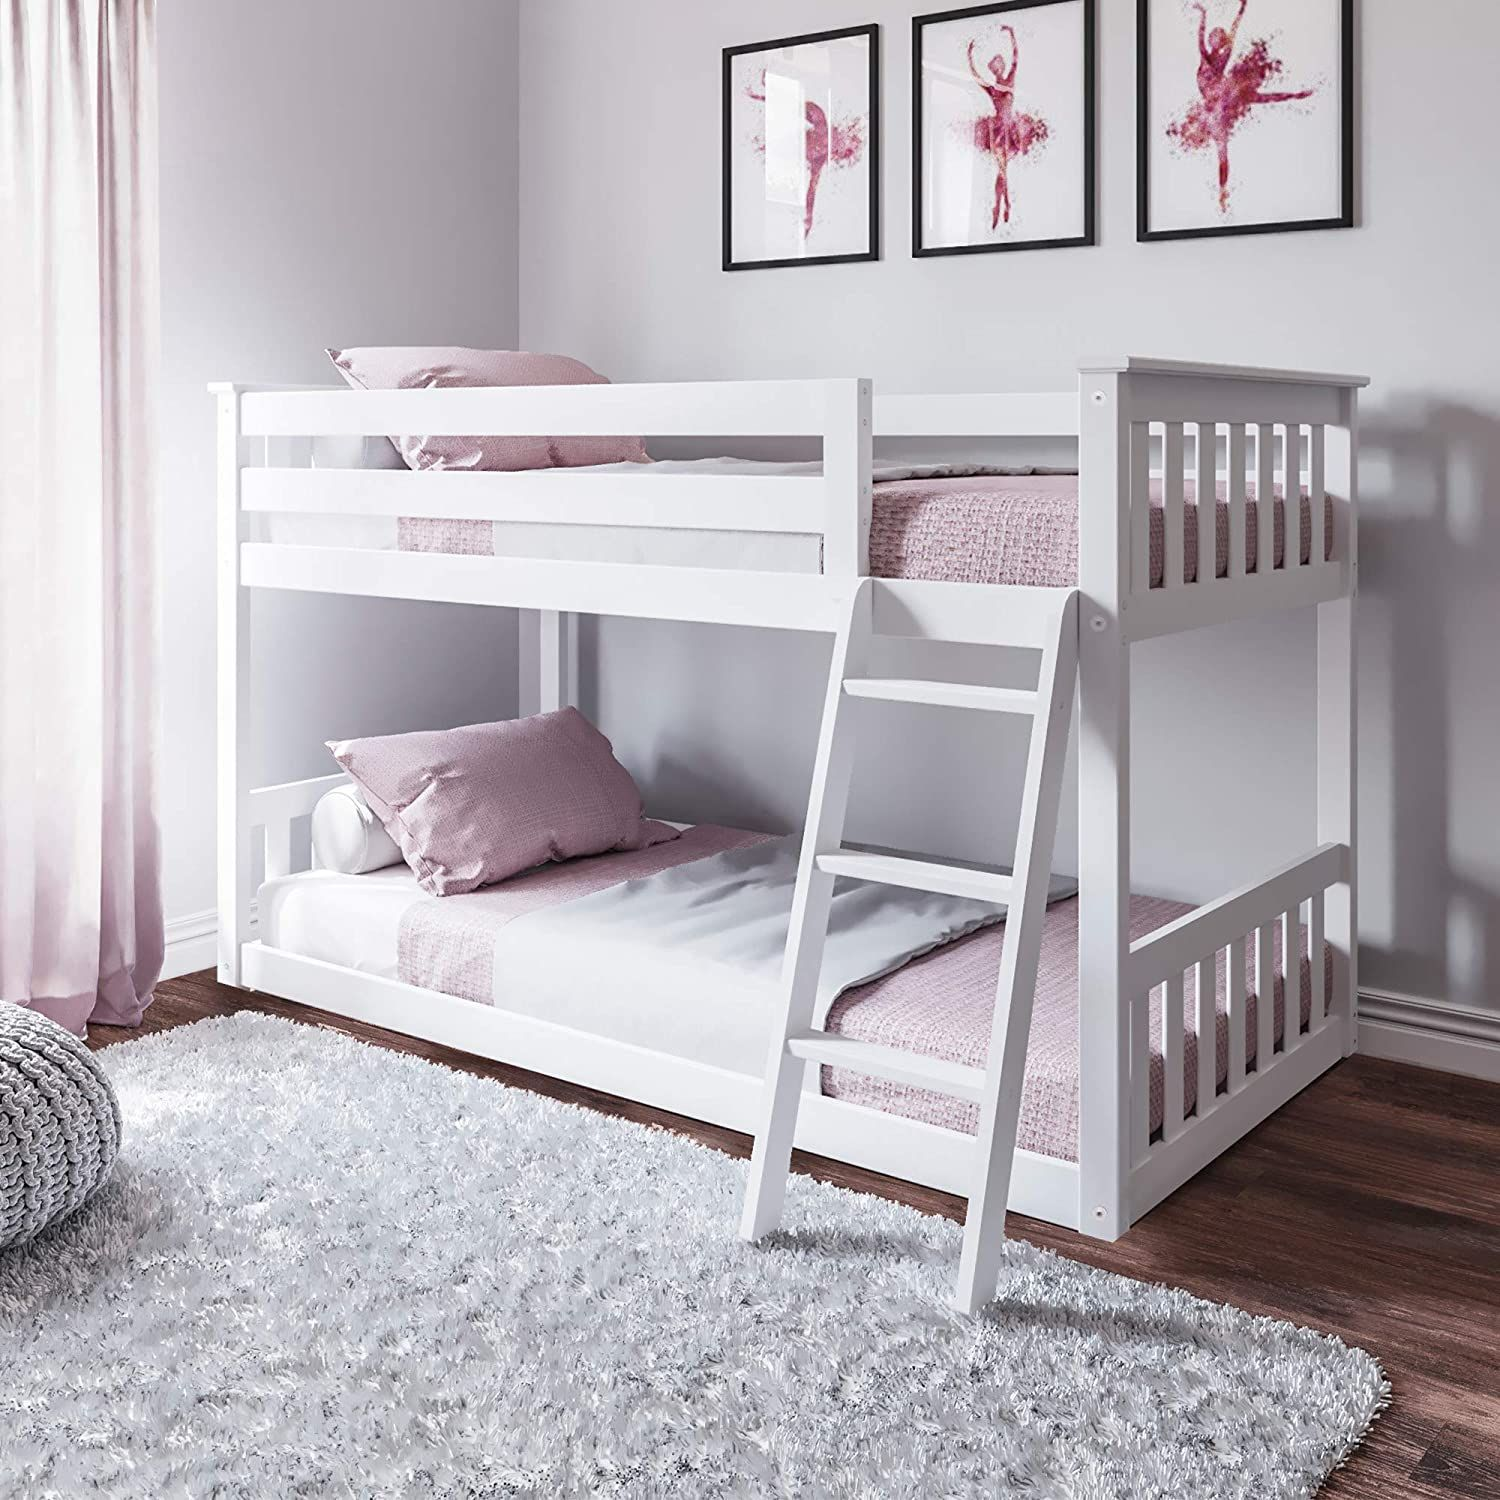 Max & Lily Twin over Twin Low Bunk Bed, White in 2020